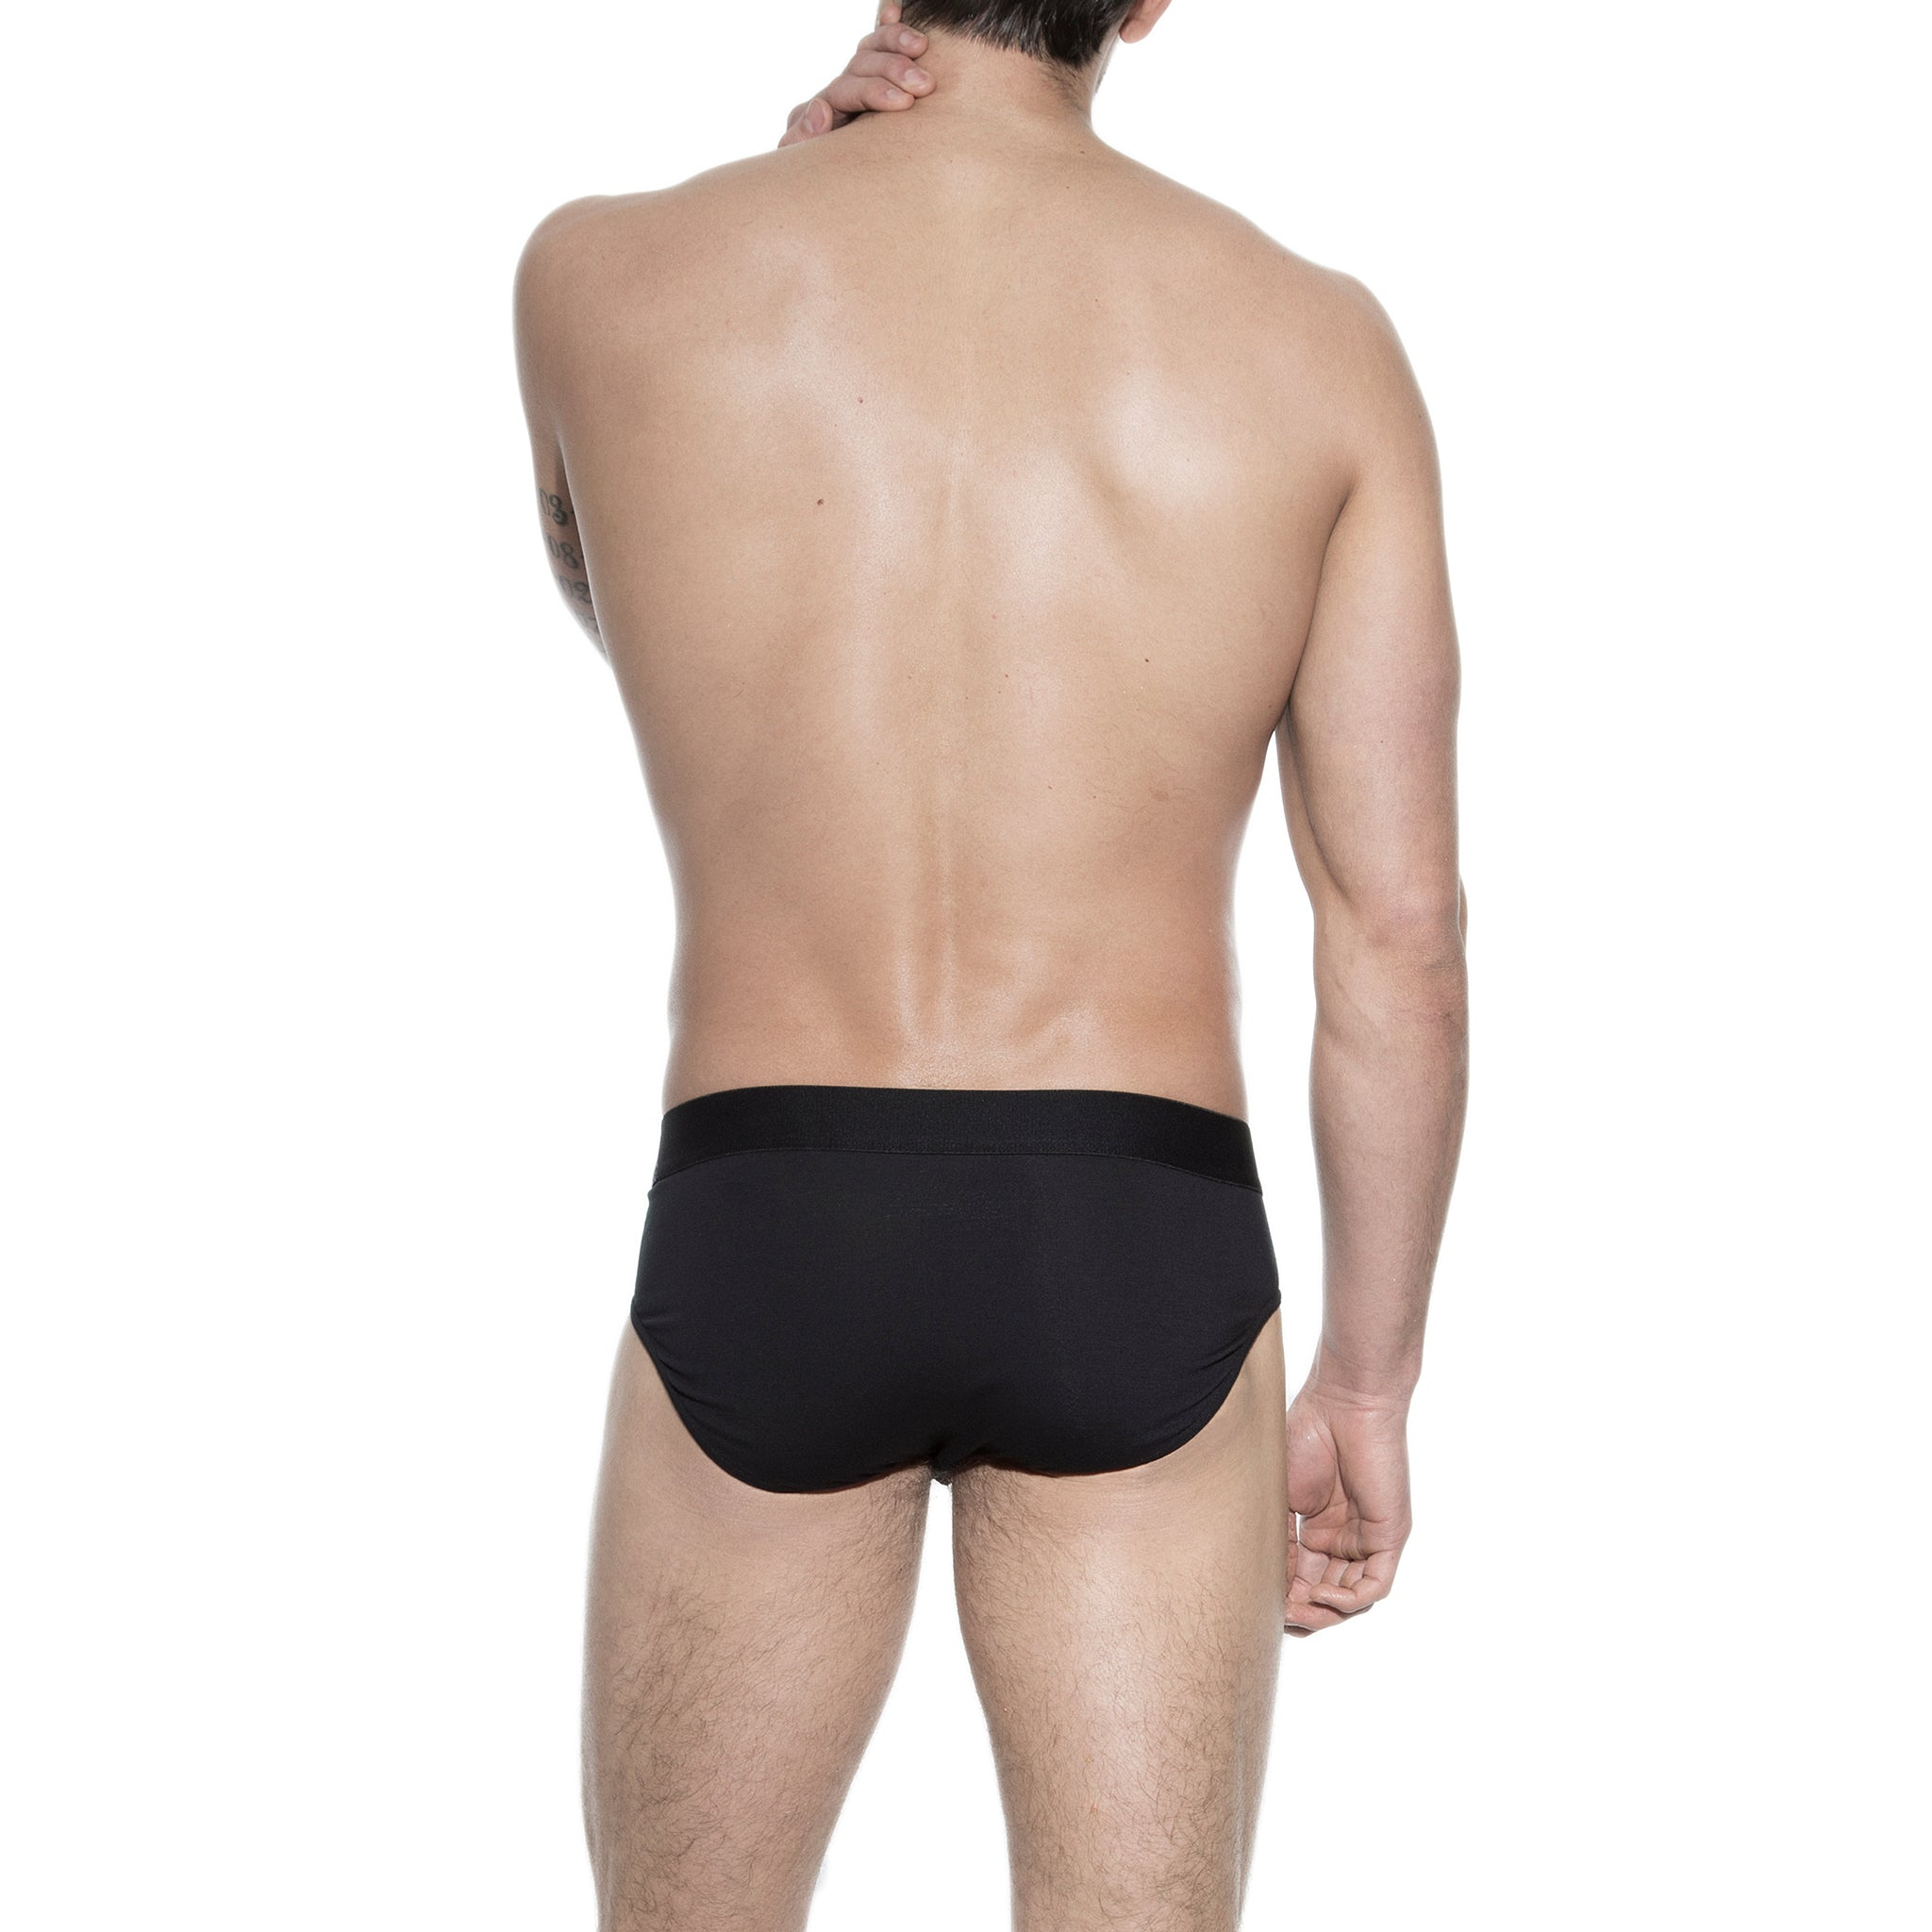 Bread and Boxers Black Brief